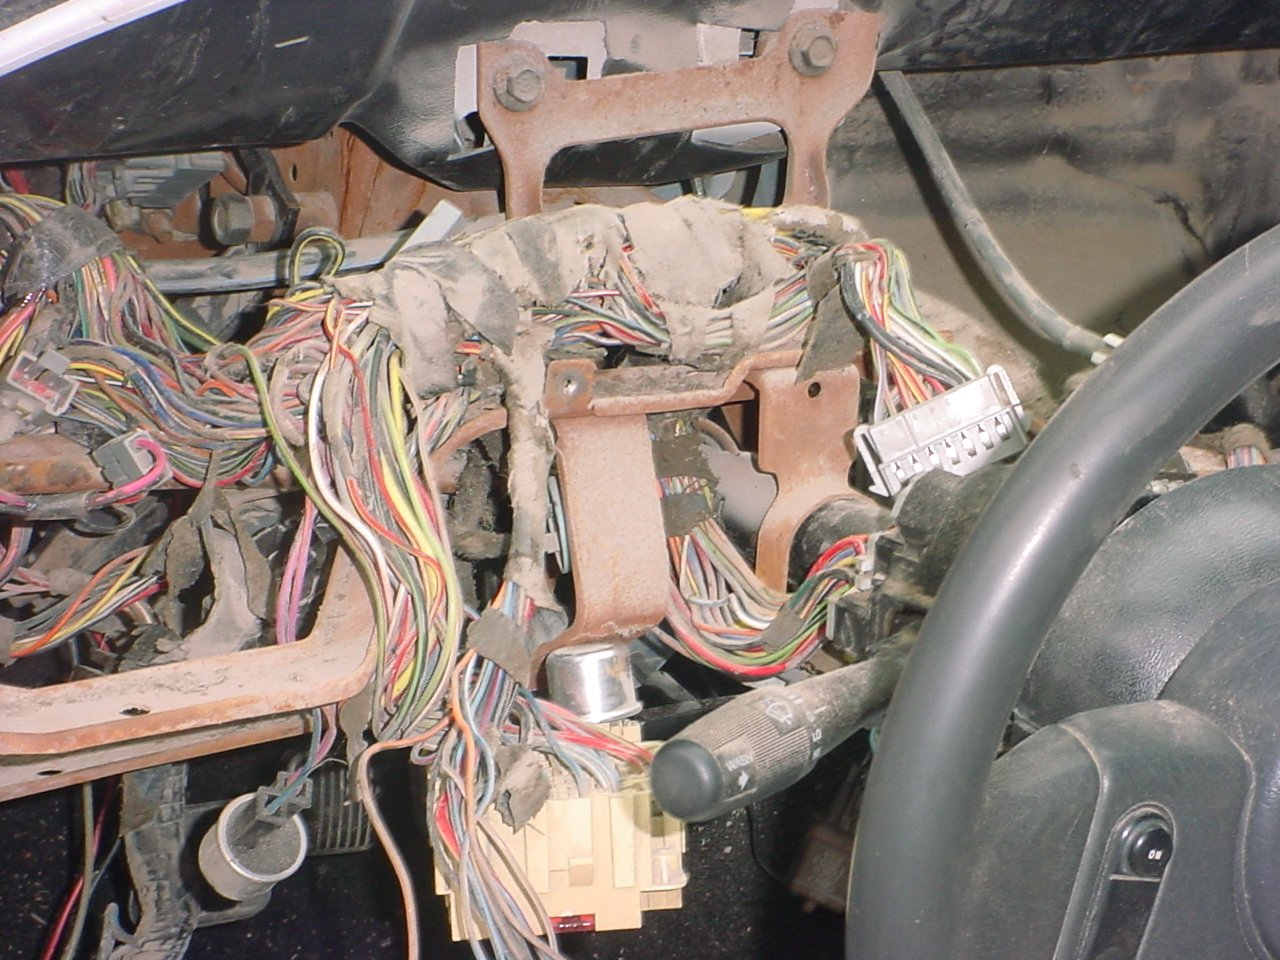 12808d1134269196 underdash wiring diagram dsc01663 underdash wiring diagram ford mustang forum 1969 mustang under dash wire harness at virtualis.co